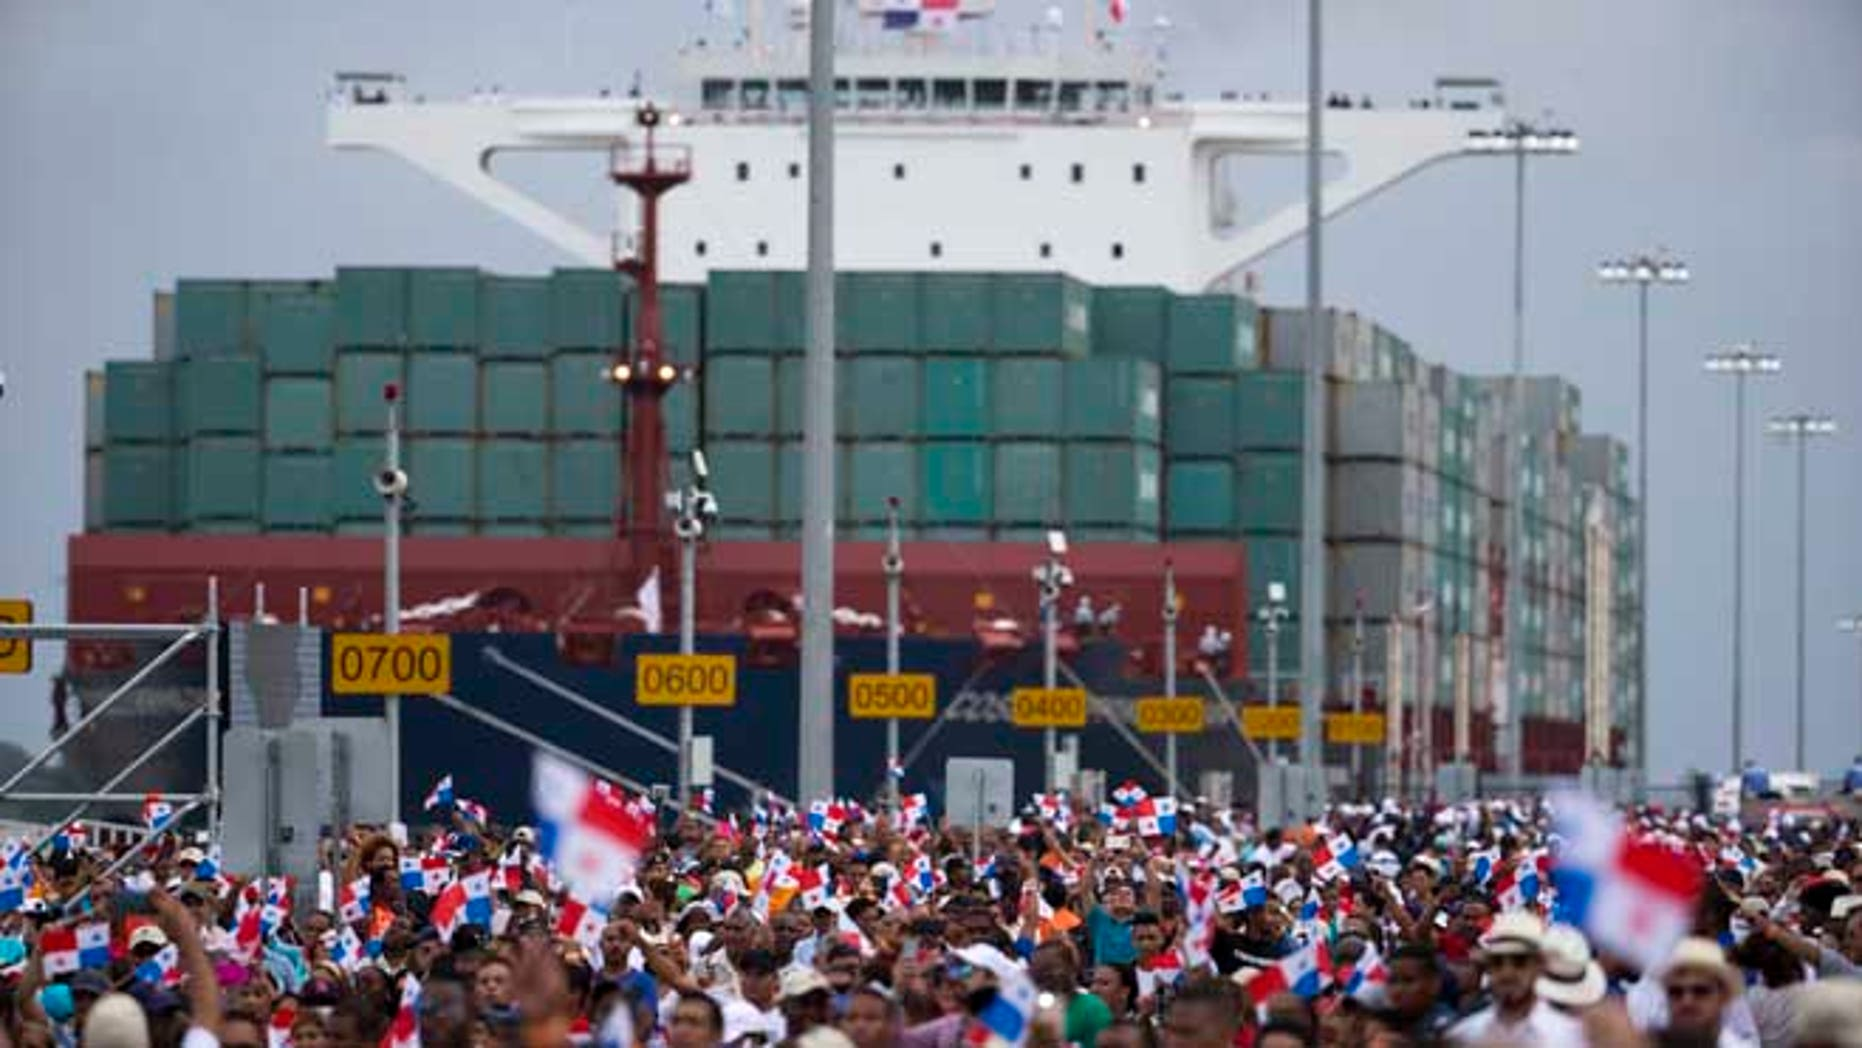 Thousands of spectators watch as the Neopanamax cargo ship, Cosco Shipping Panama, makes its way through the new Agua Clara locks, part of the Panama Canal expansion project, near the port city of Colon, Panama, Sunday June 26, 2016. The ship carrying more than 9,000 containers entered the newly expanded locks that will double the Panama Canal's capacity in a multibillion-dollar bet on a bright economic future despite tough times for international shipping. (AP Photo/Moises Castillo)